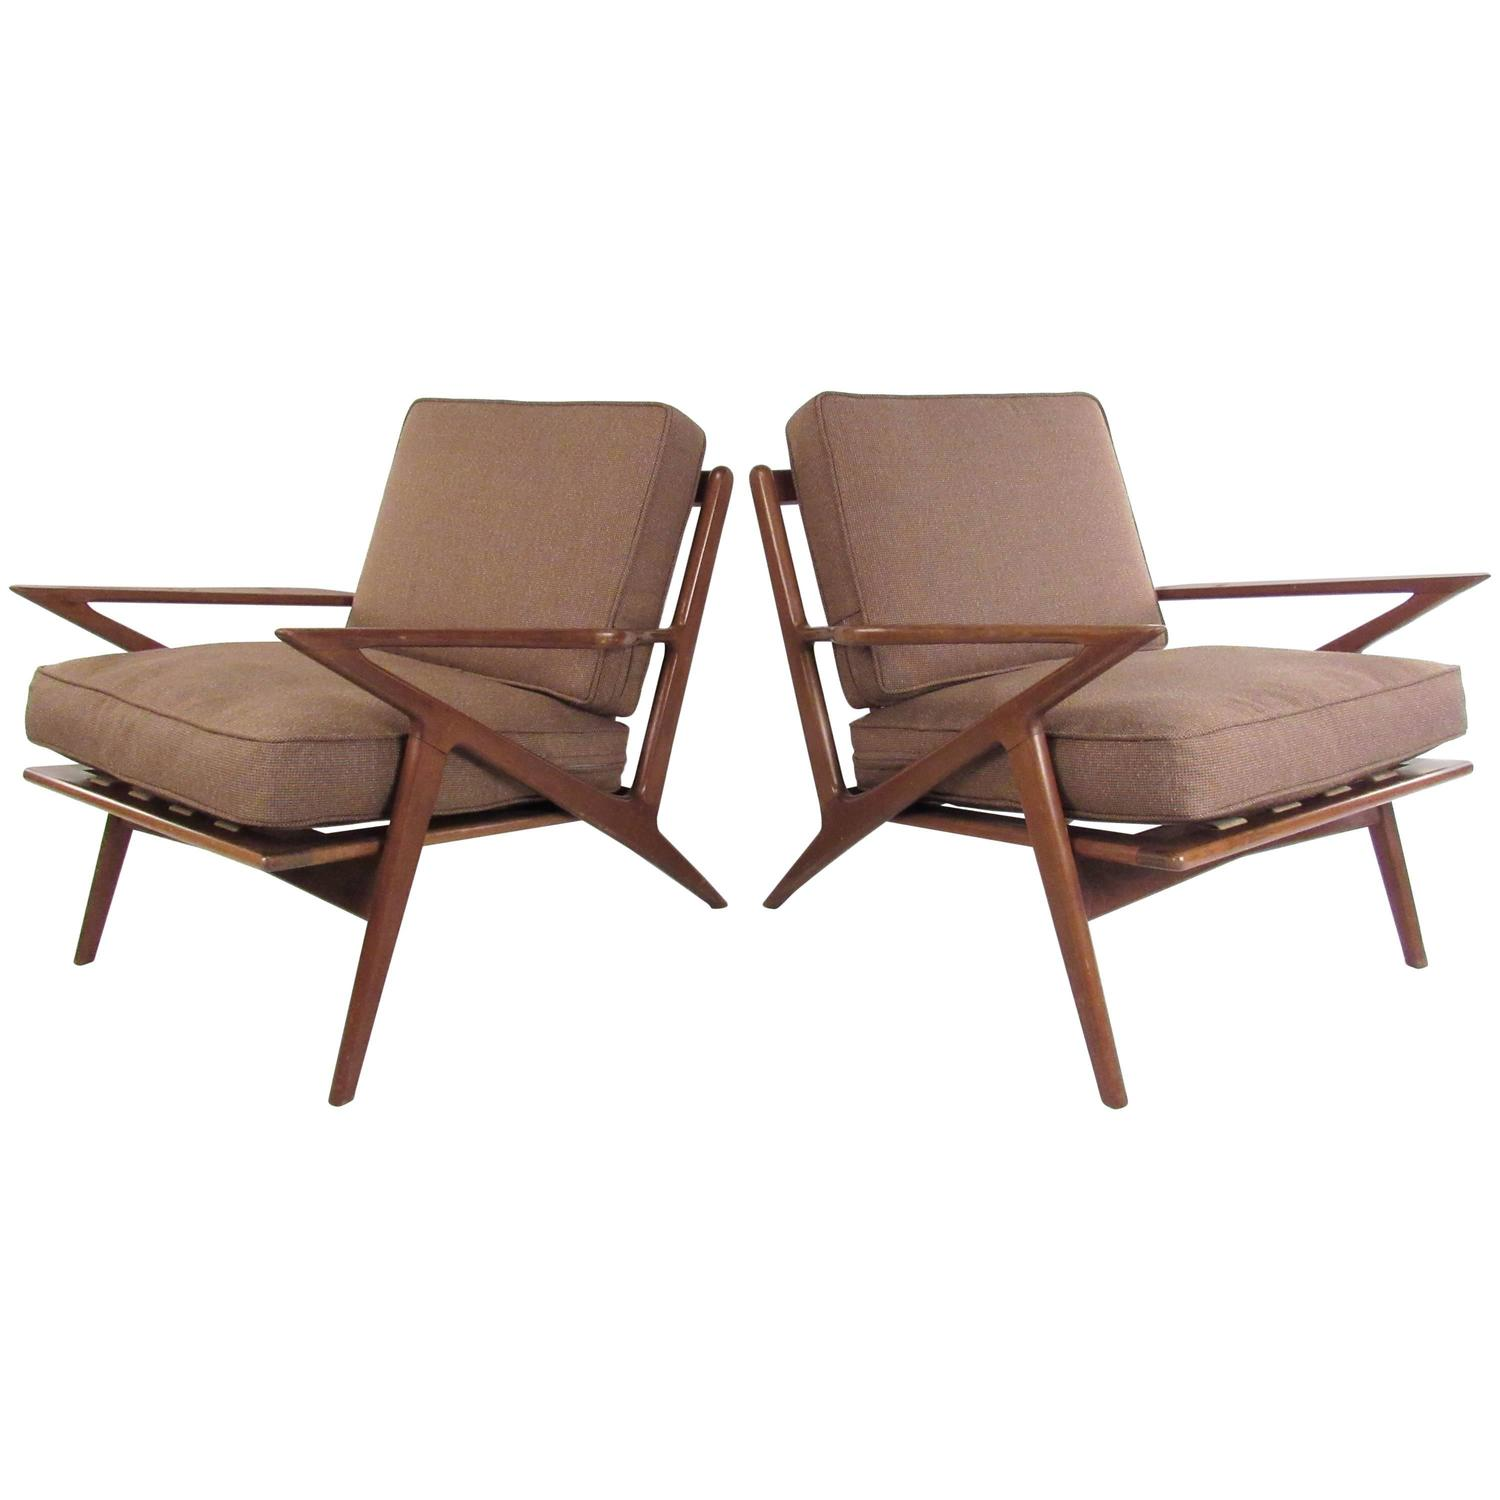 Pair of mid century poul jensen style z chairs at 1stdibs for Z chair mid century